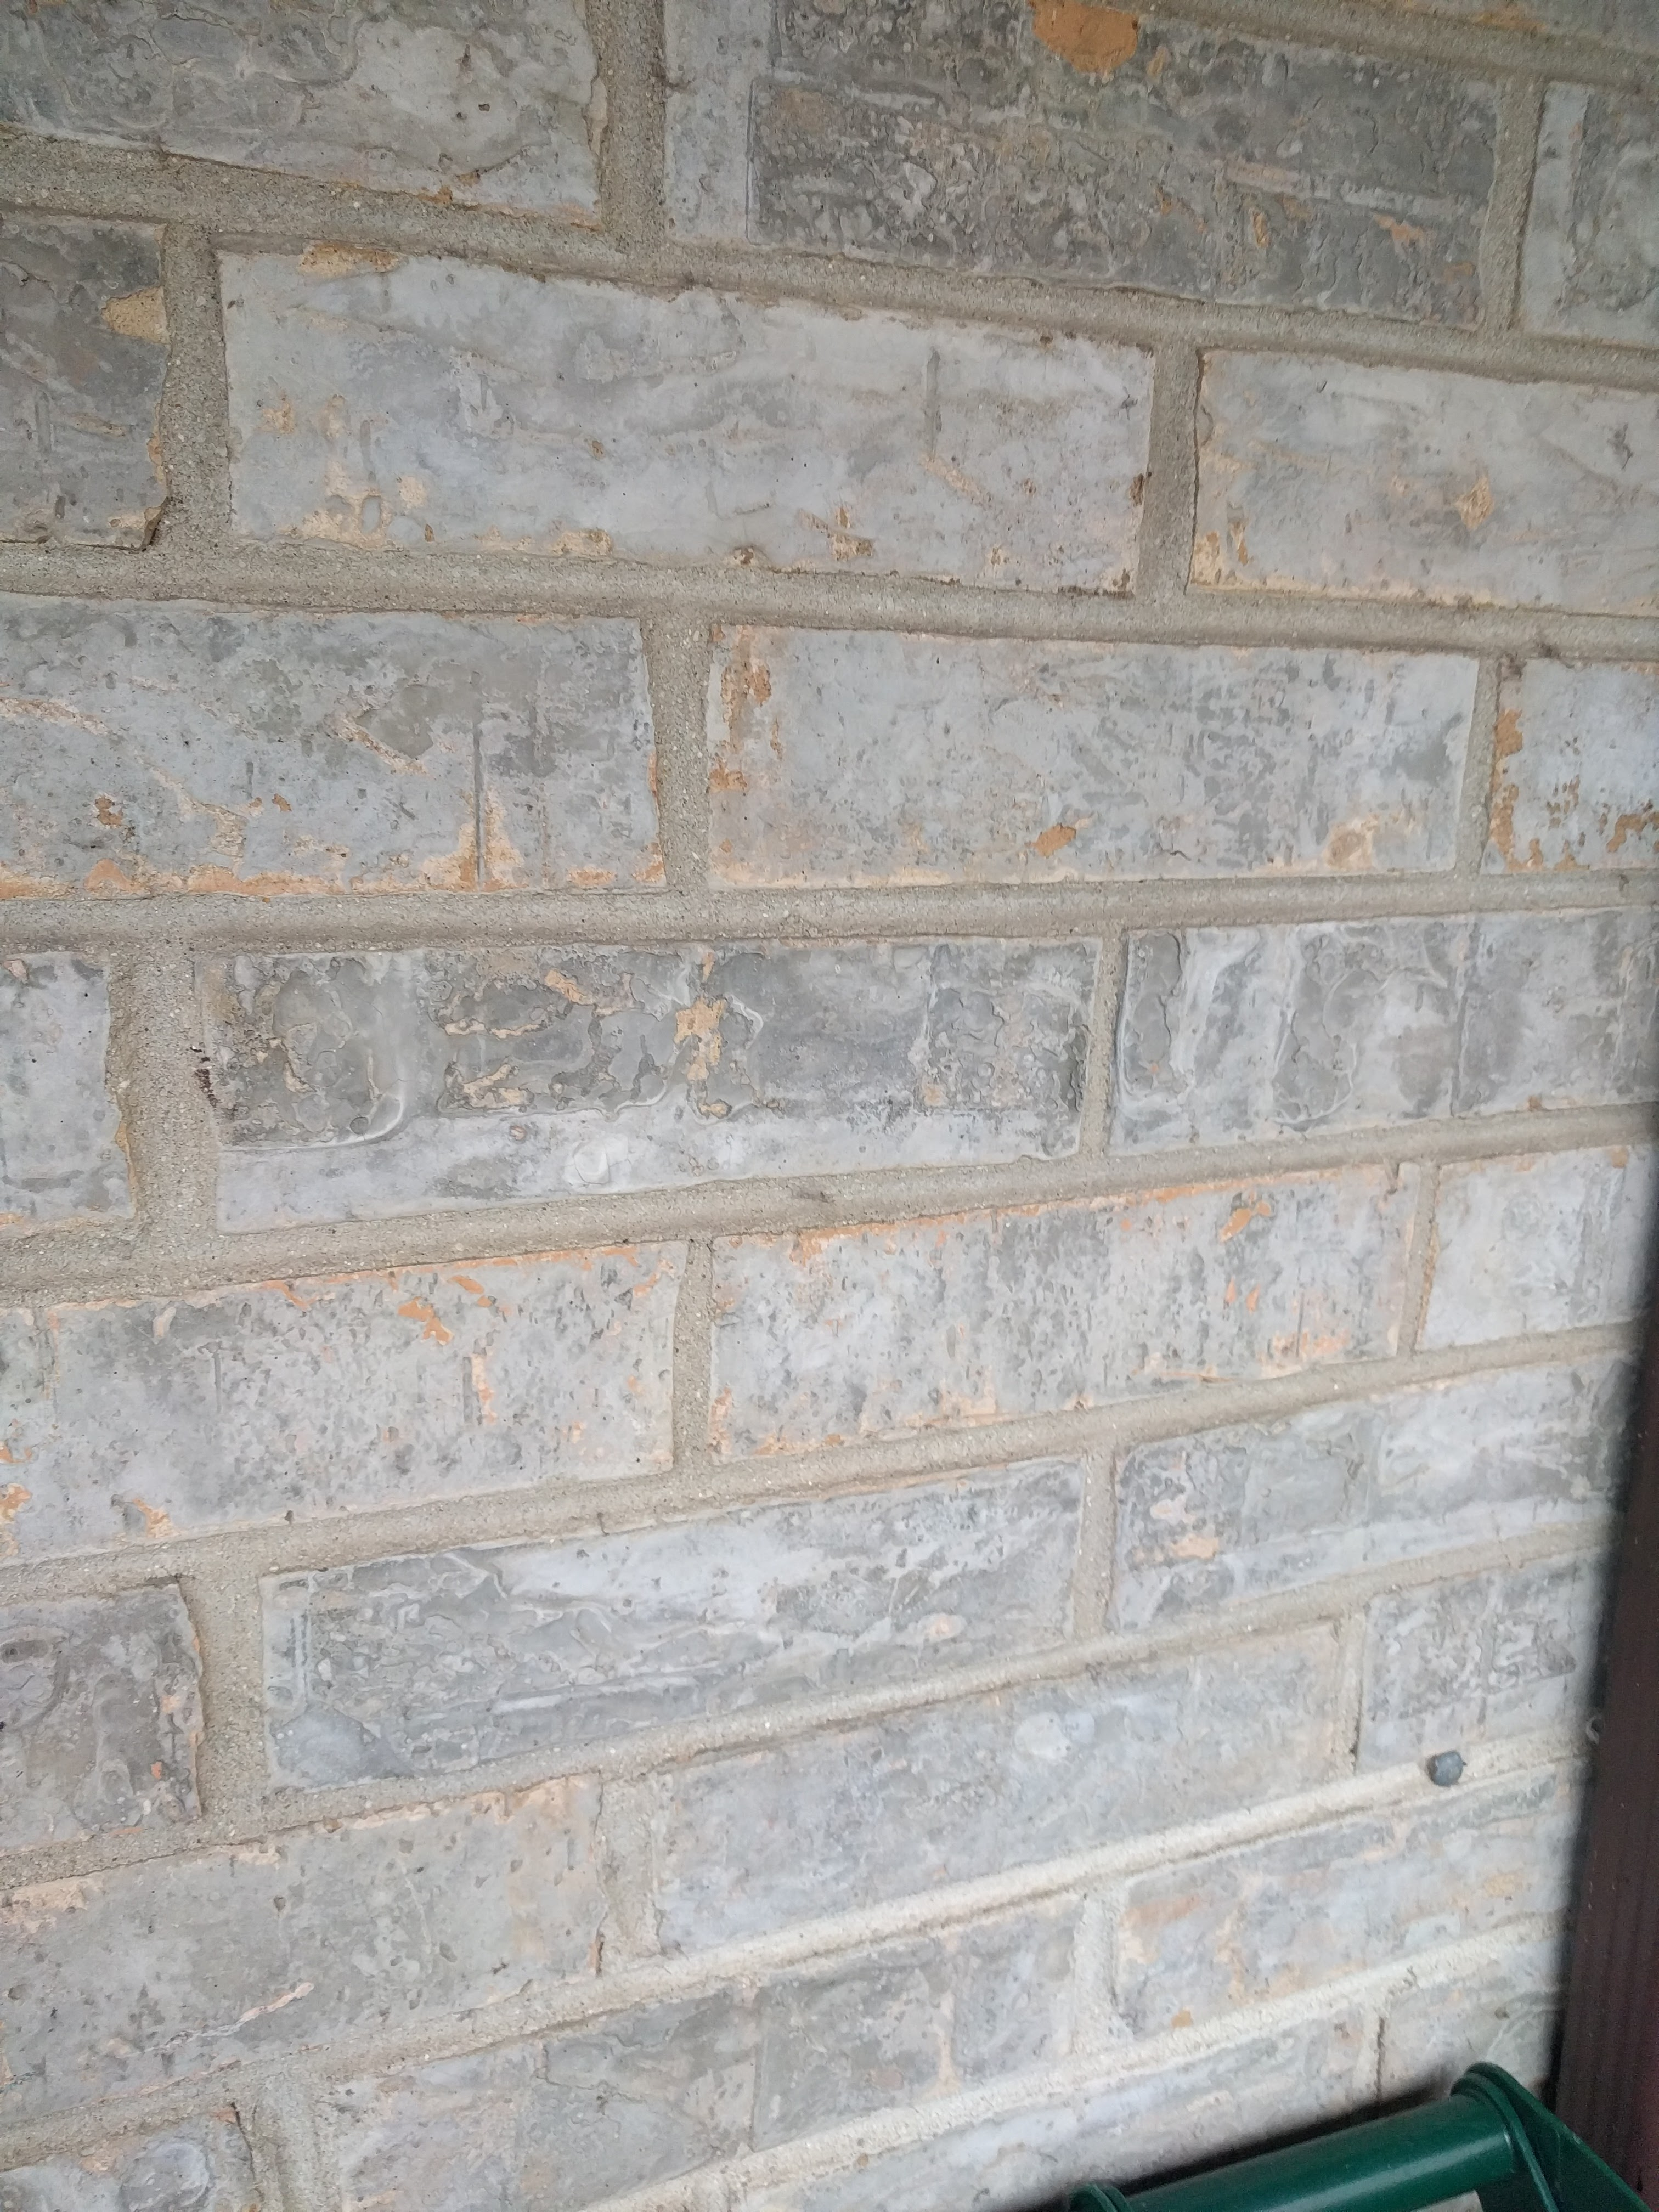 Replacement of Brick w/ a gray glaze/morter spread on face of it-brice-face-multiple-01.jpg